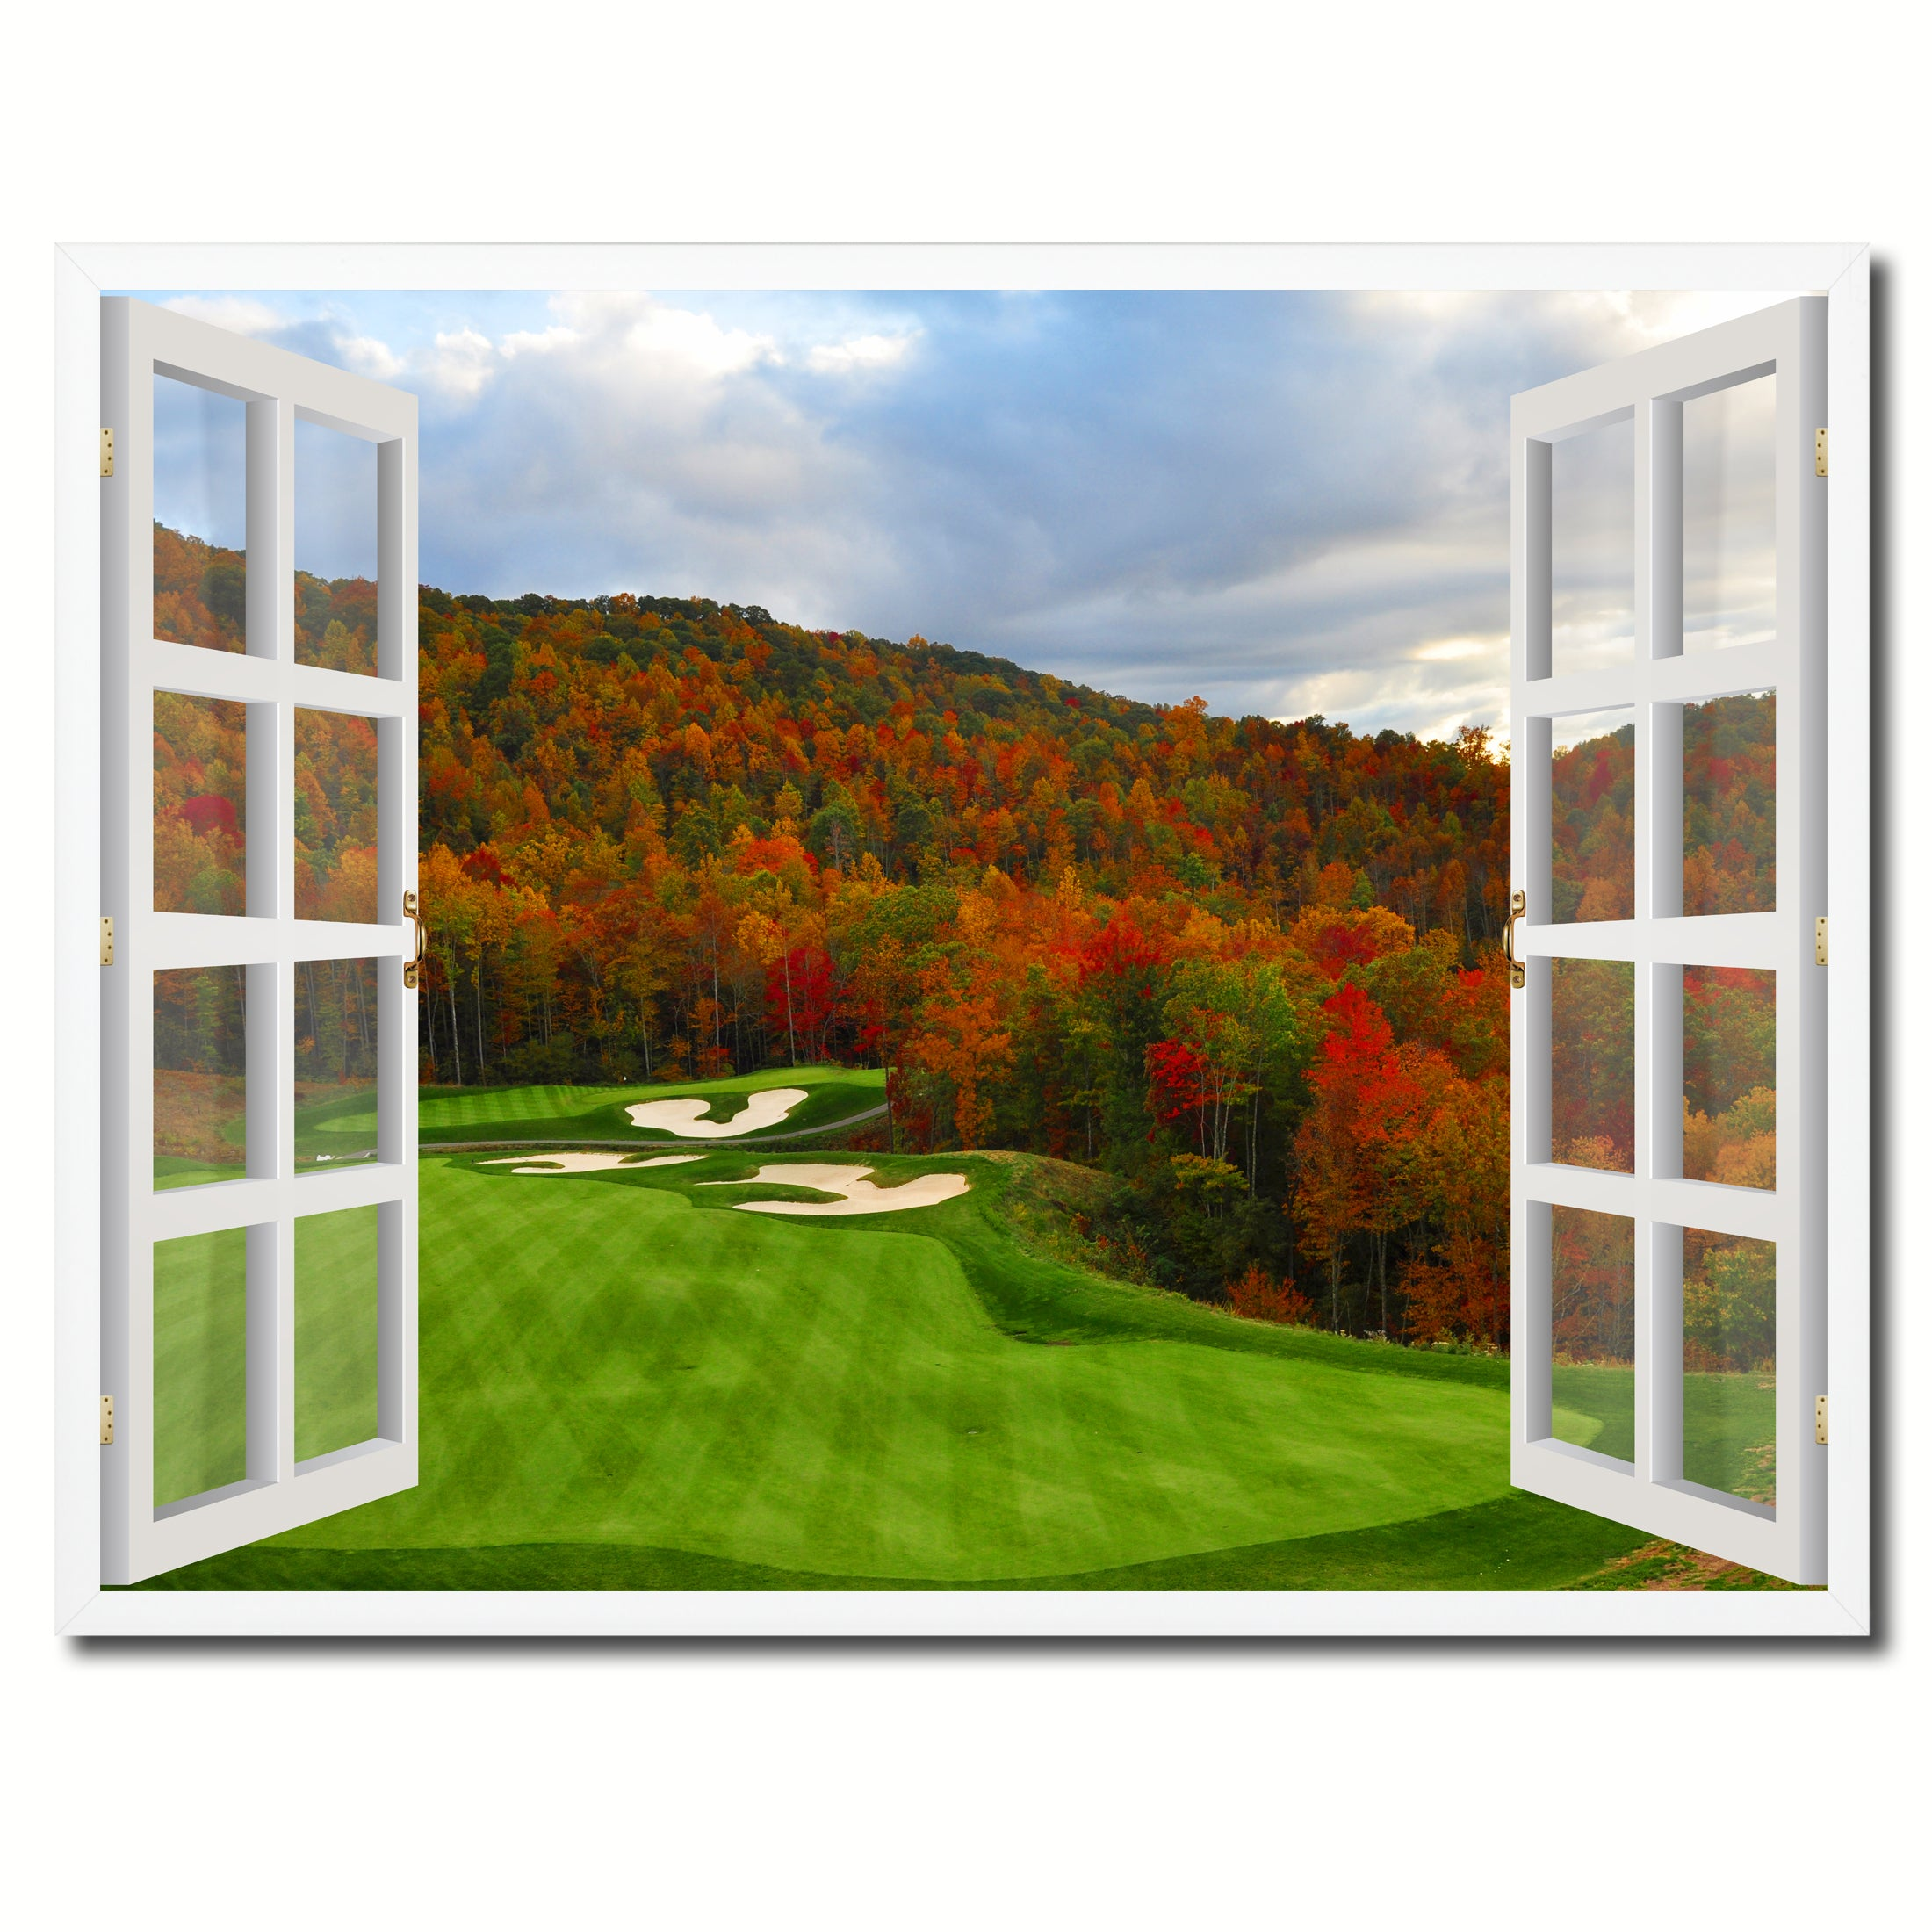 North Carolina Golf Course Autumn View Picture French Window Framed Canvas Print Home Decor Wall Art Collection